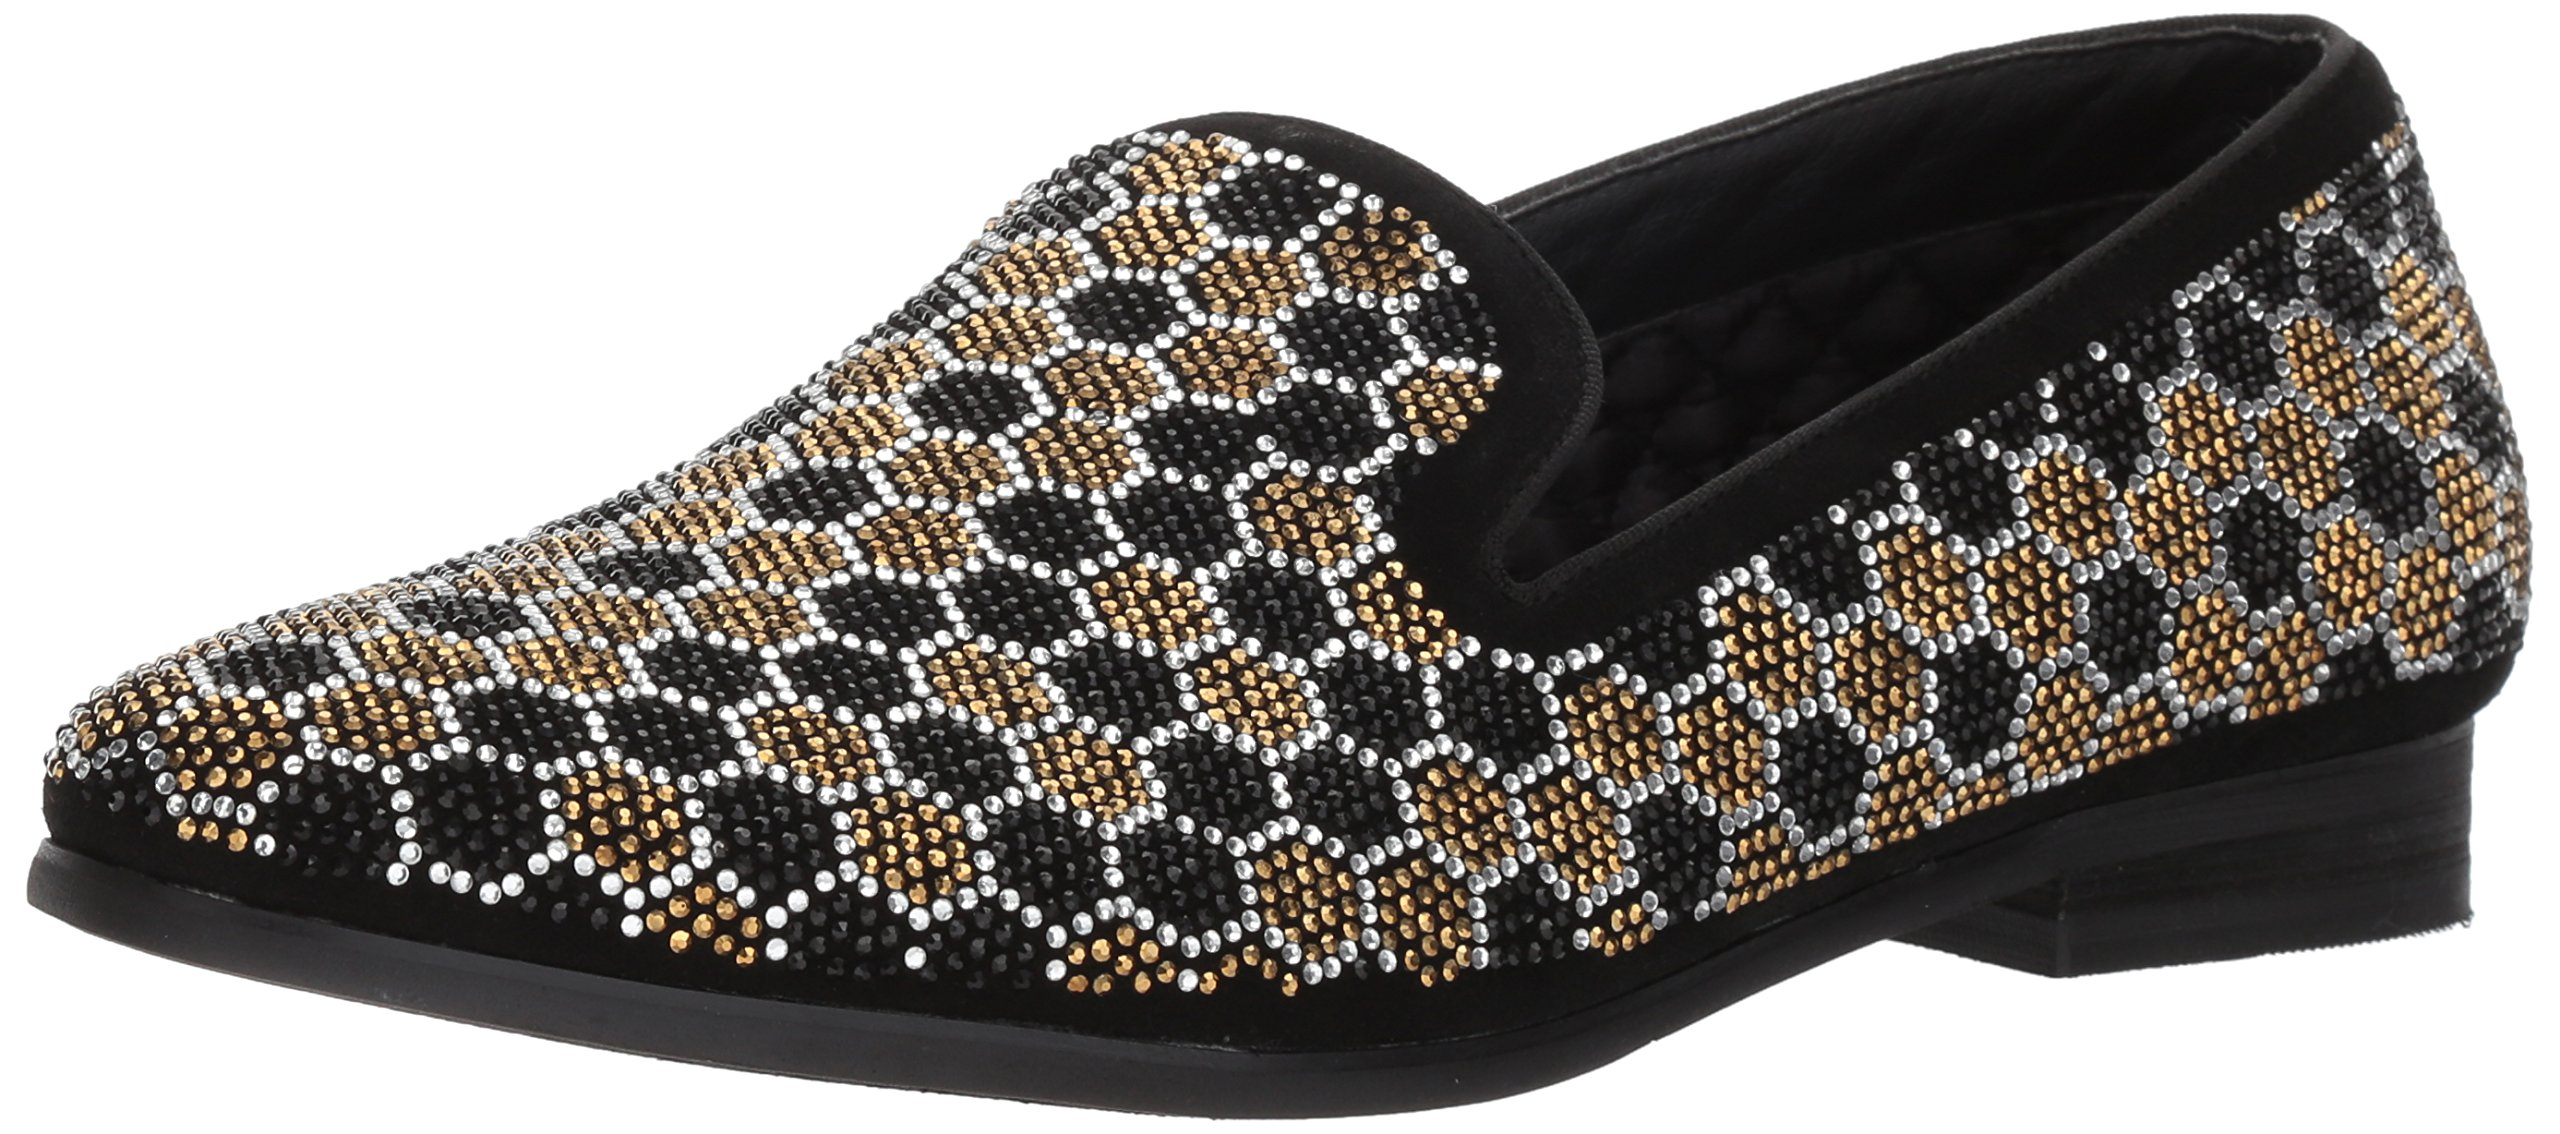 Steve Madden Men's Caspian Loafer, Black/Gold, 12 M US